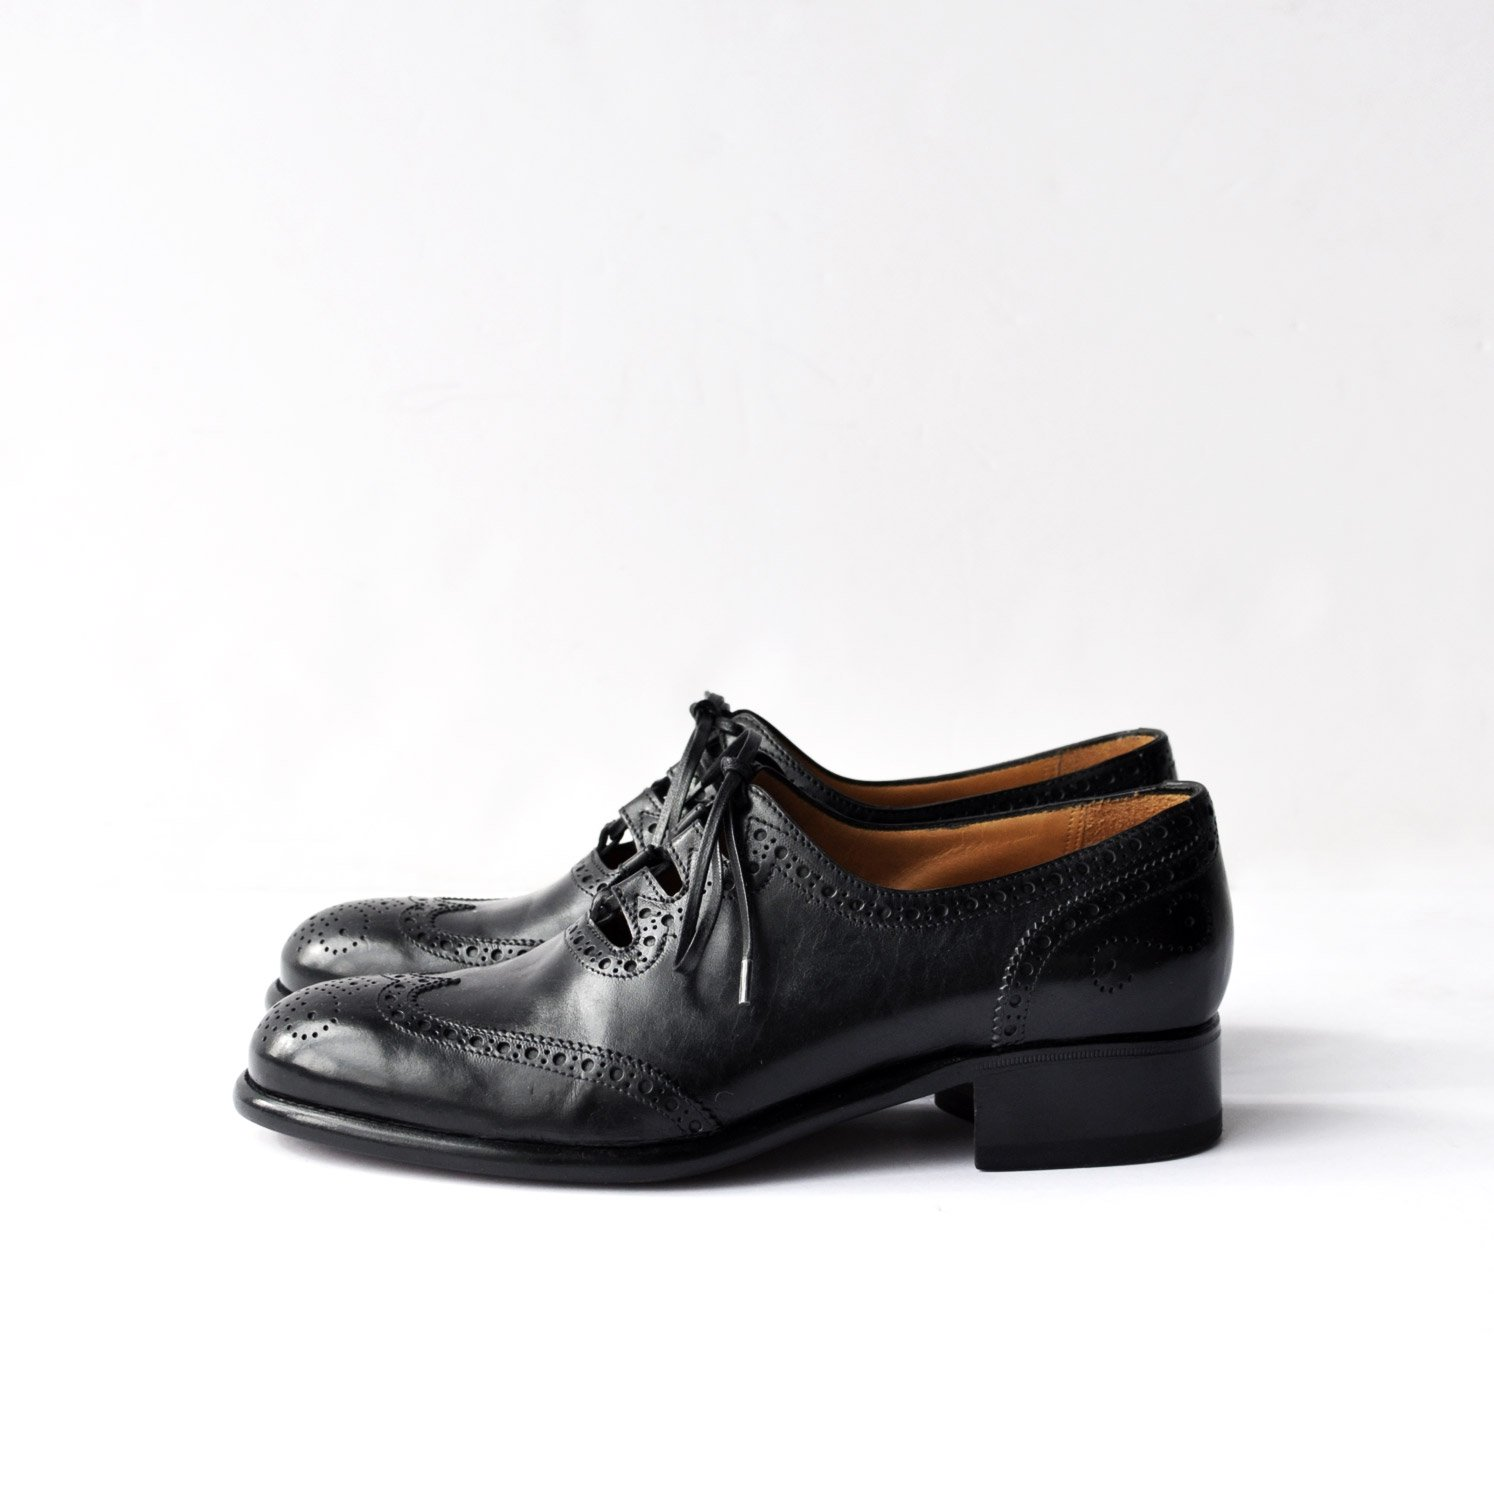 GHILLIE SHOES [BLACK/Vegetable Tanning Calf]